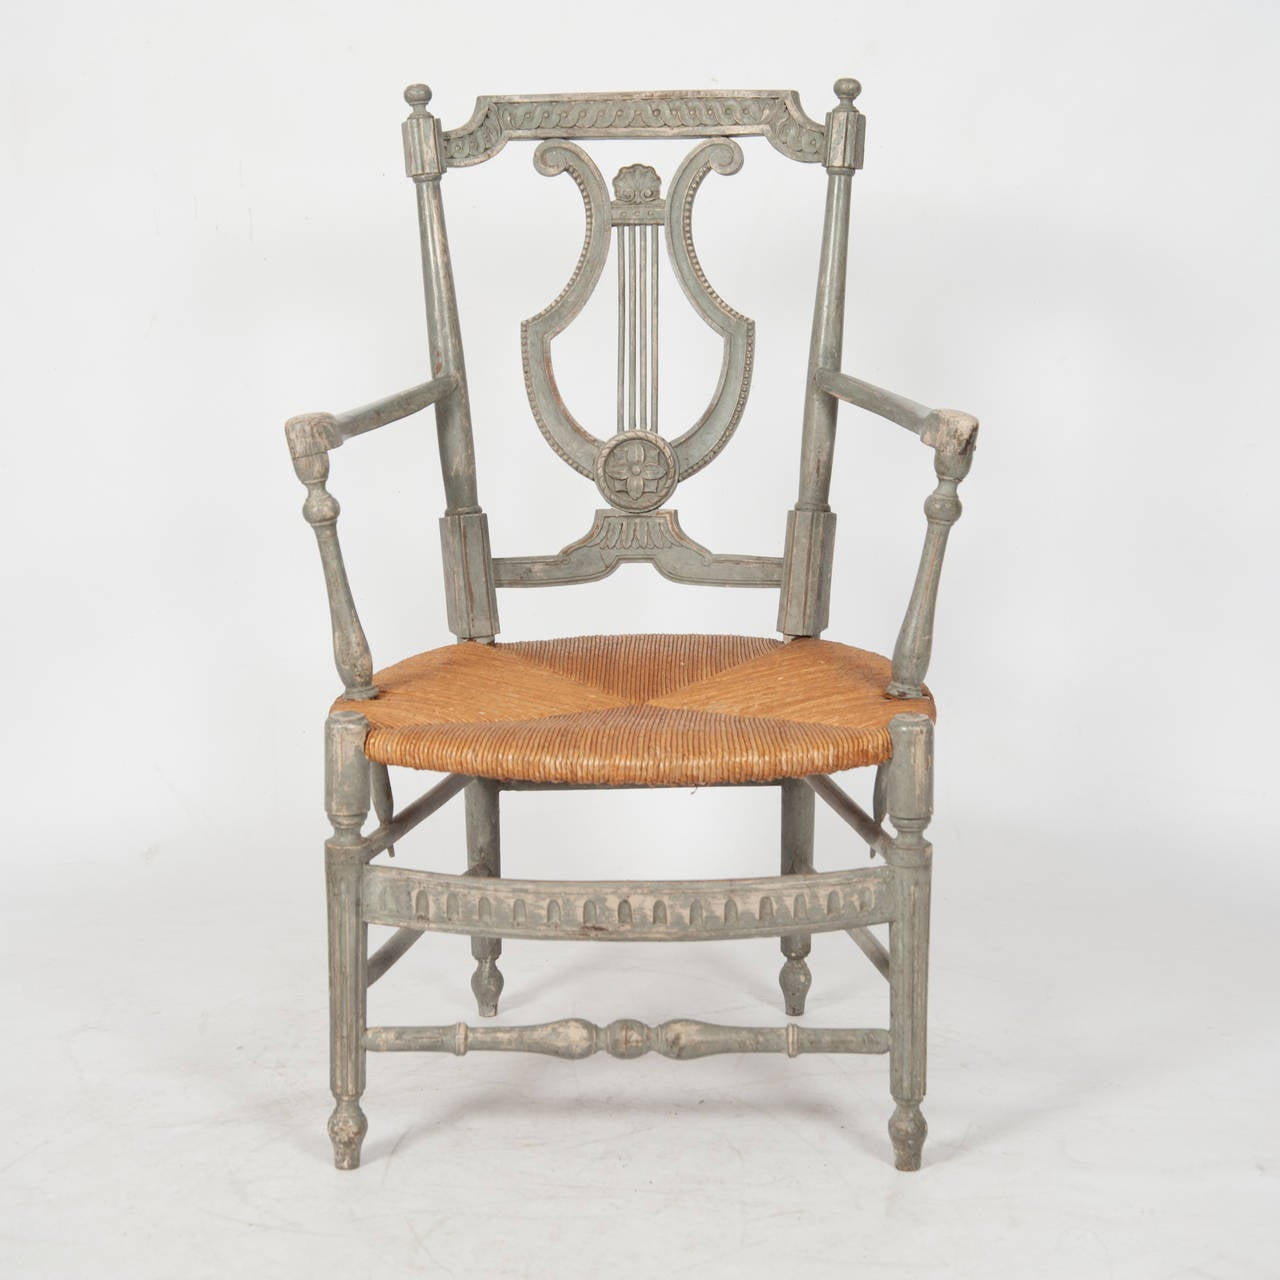 Superb Pair Of French Provincial Carver Chairs Circa 1800 For Sale At 1stdibs